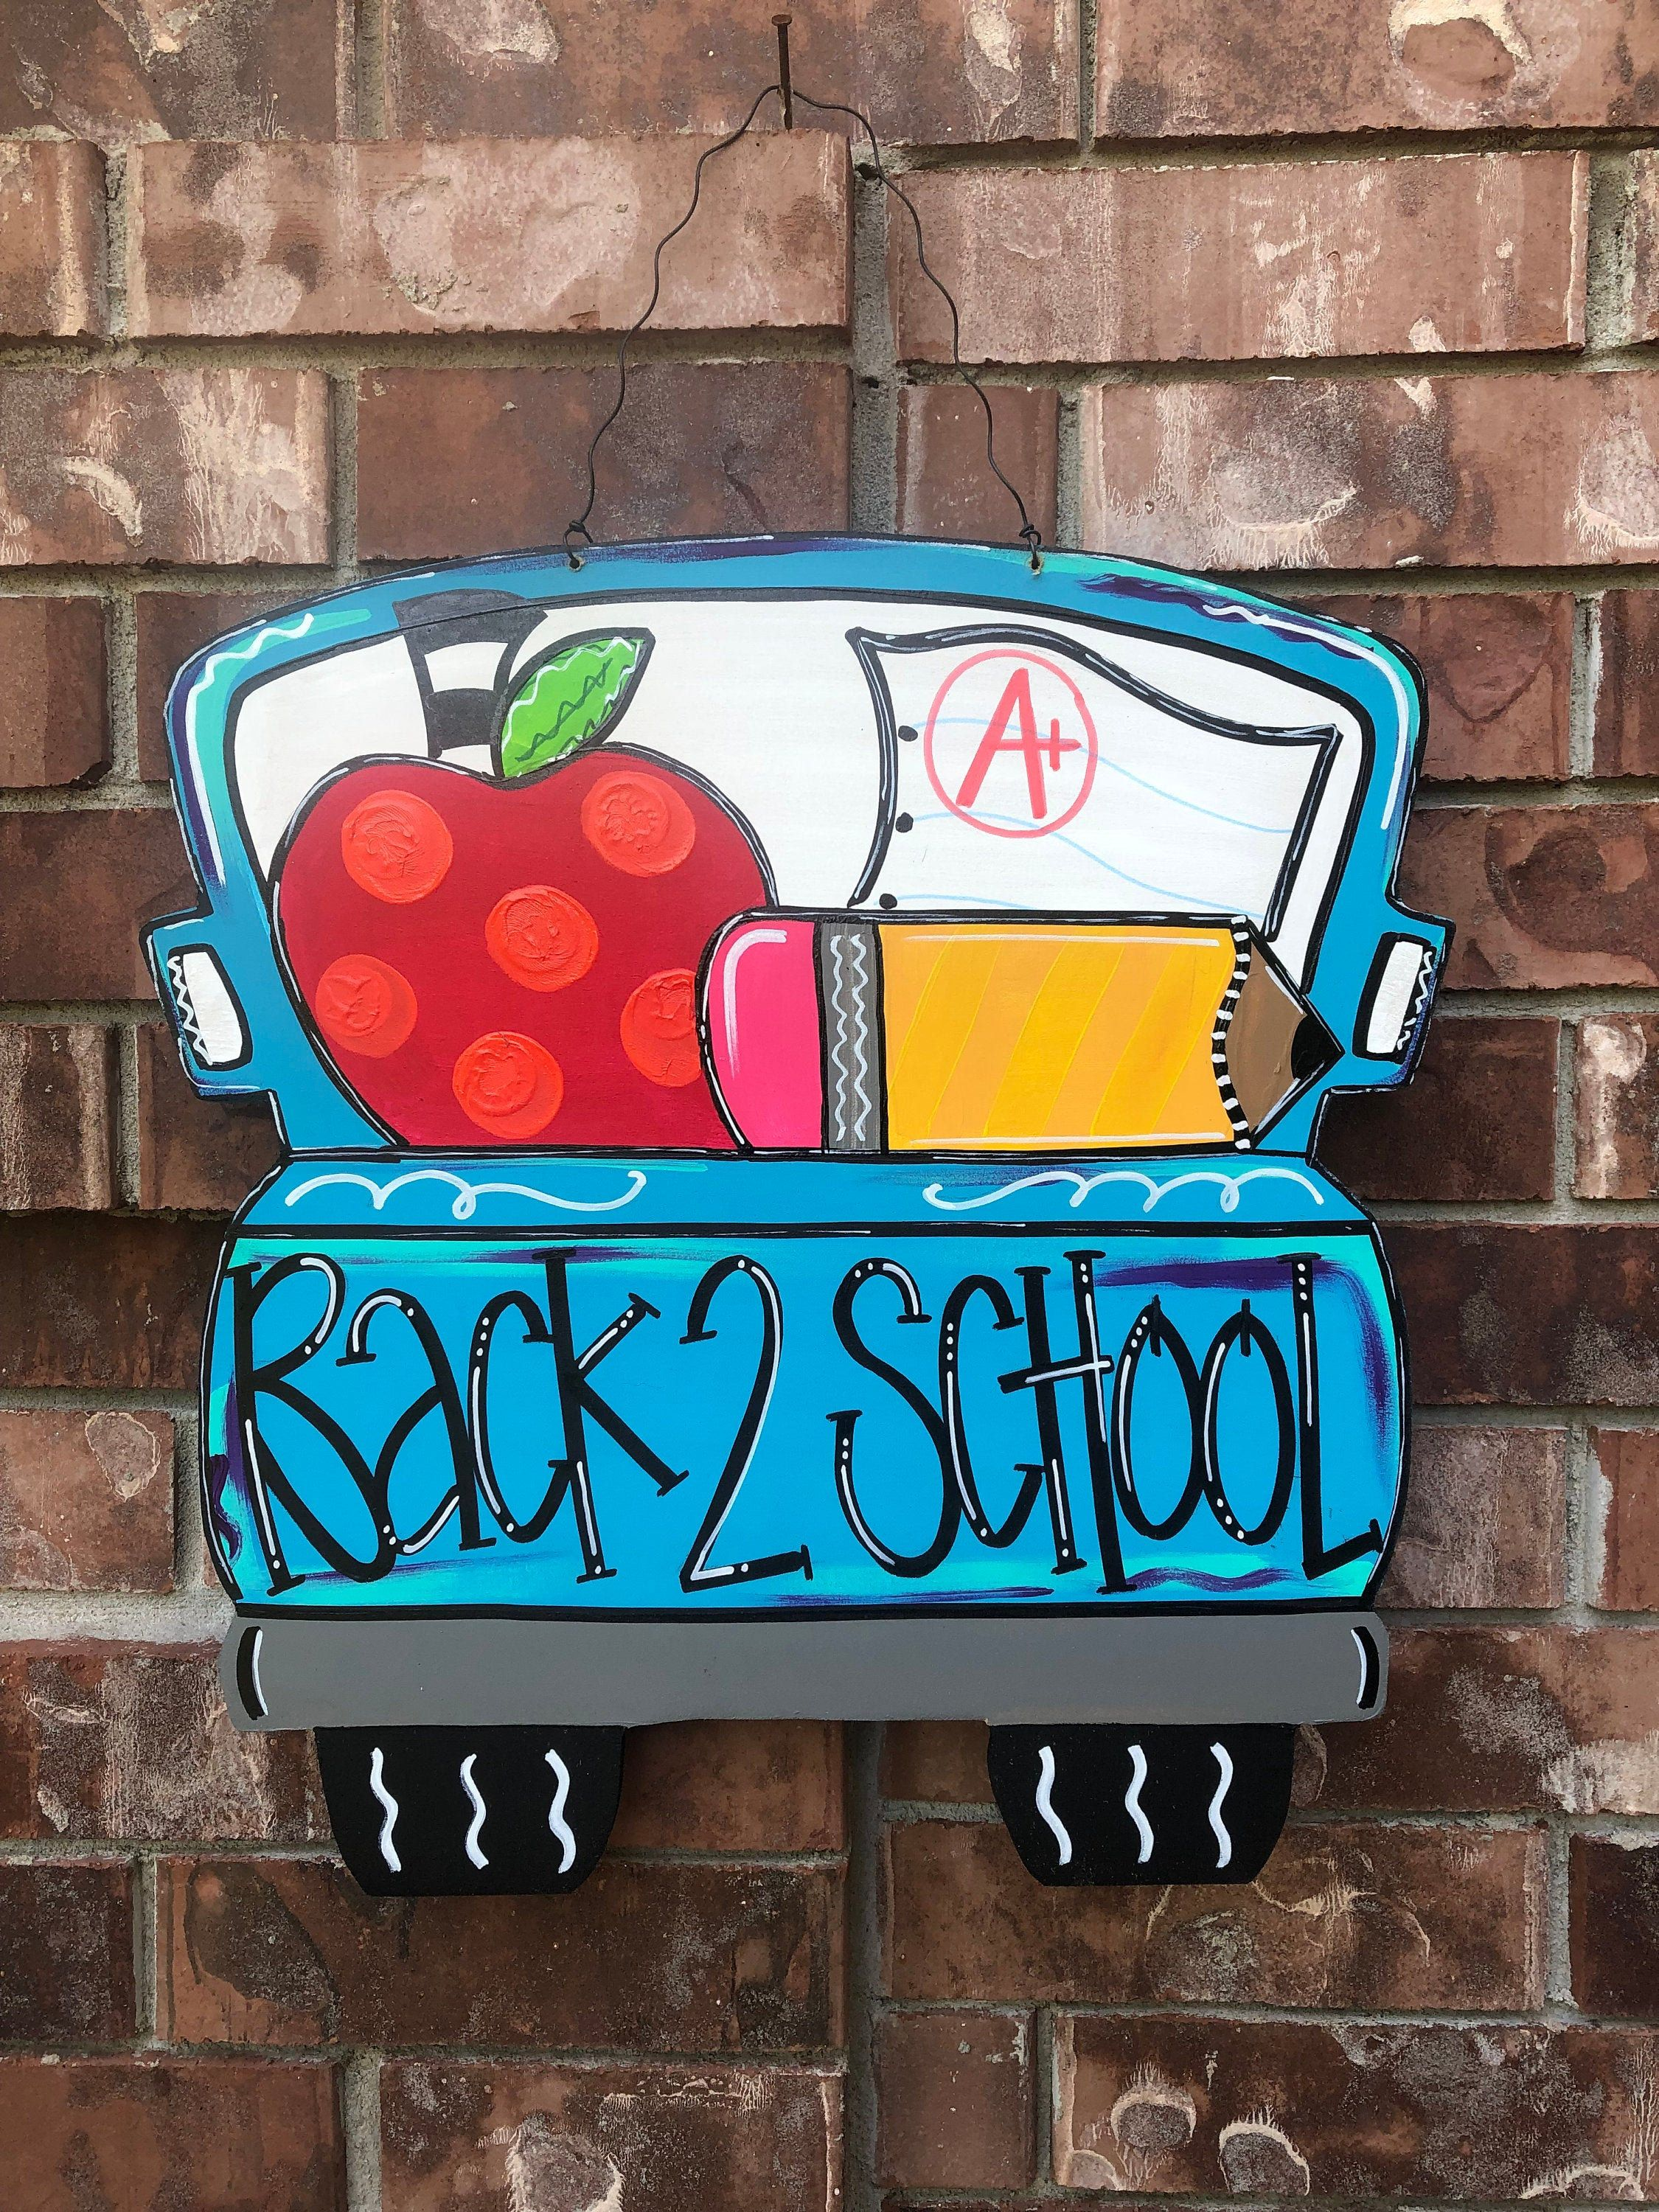 Items similar to Back to school door hanger, classroom door hanger, back to school wreath, classroom wreath, back to school truck hanger, fall door hanger on Etsy